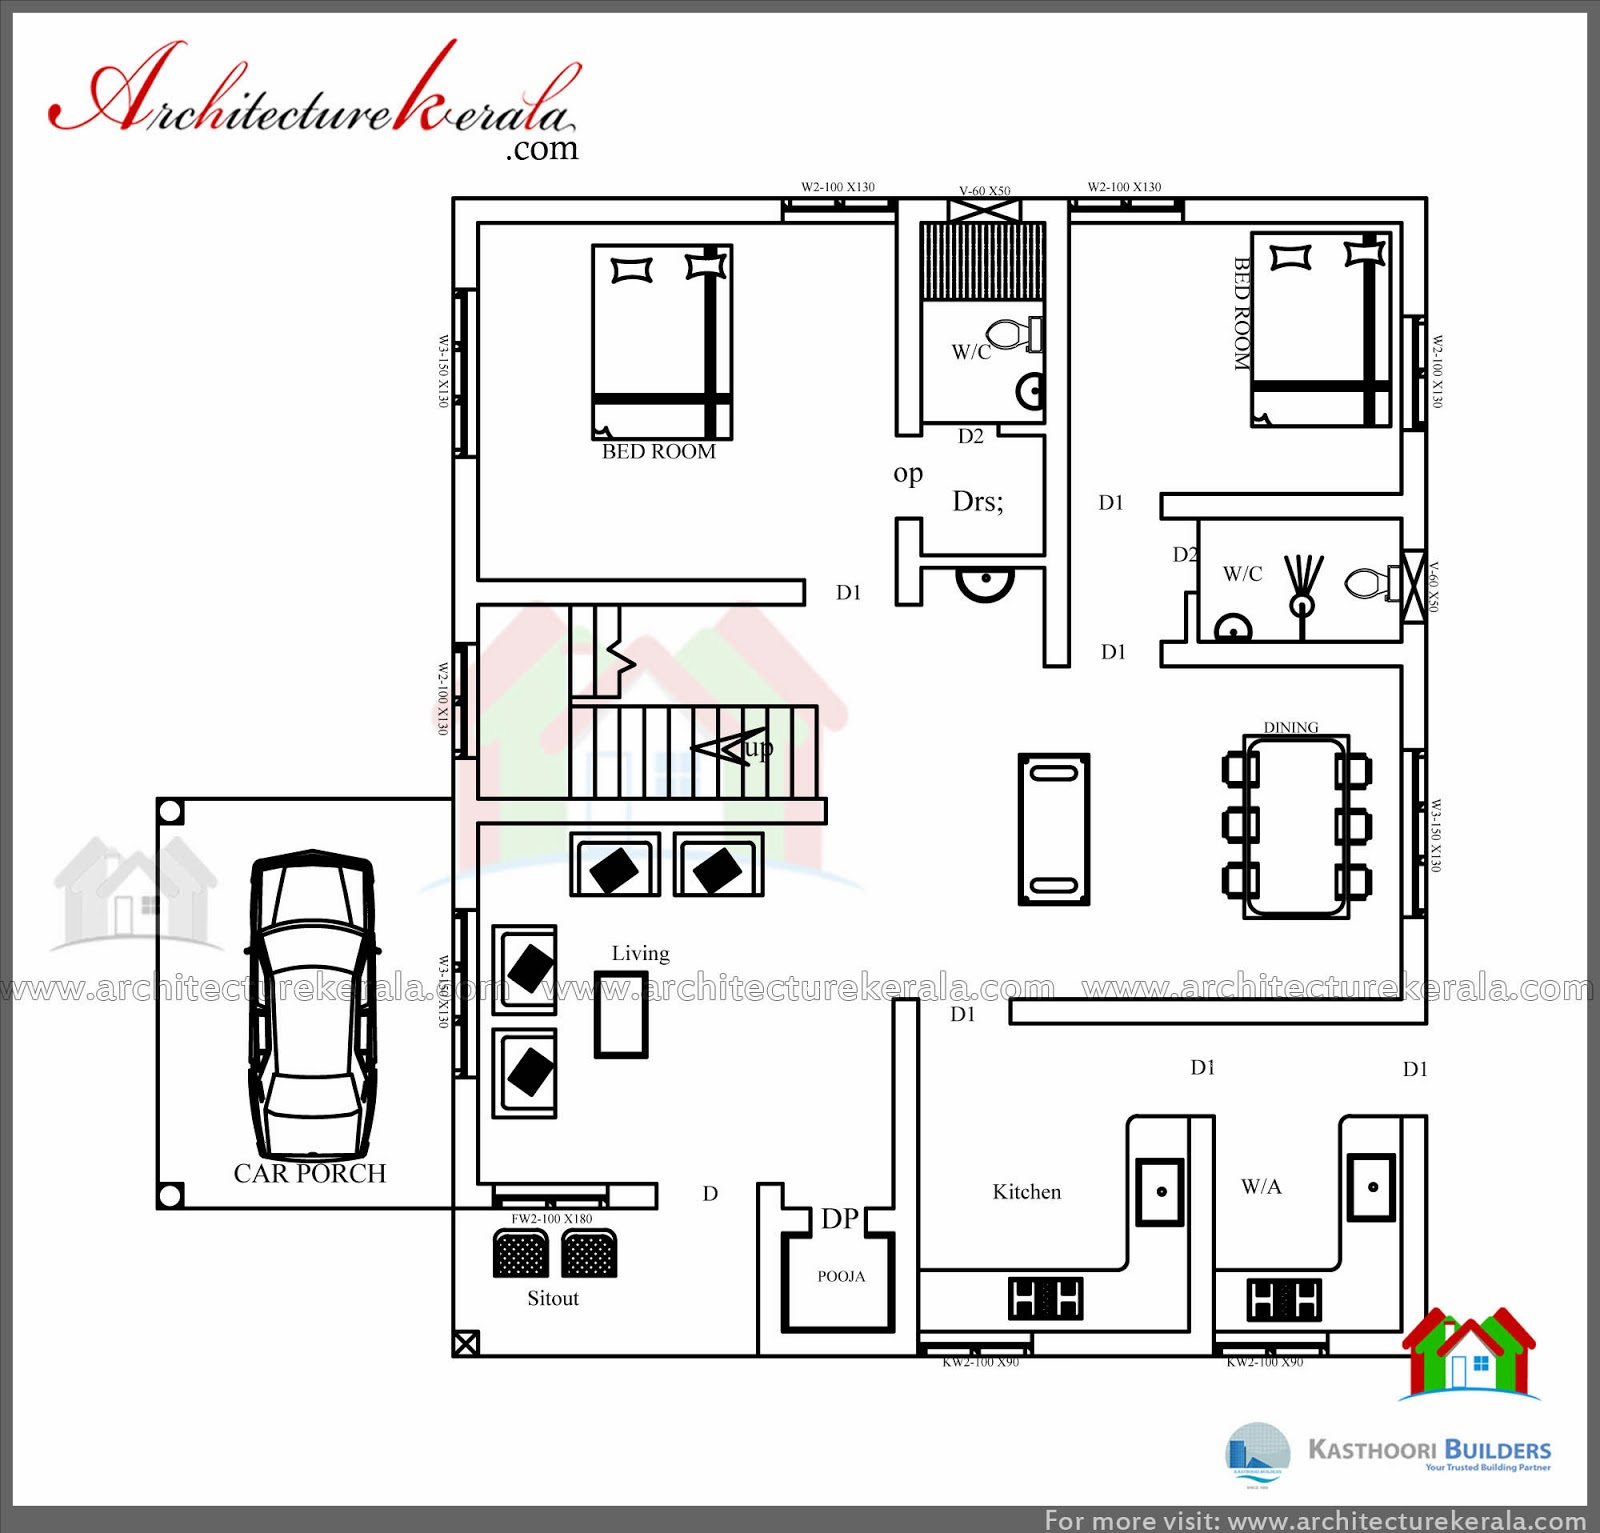 Low cost 3 bedroom kerala house plan with elevation free for Kerala house plan 3 bedroom